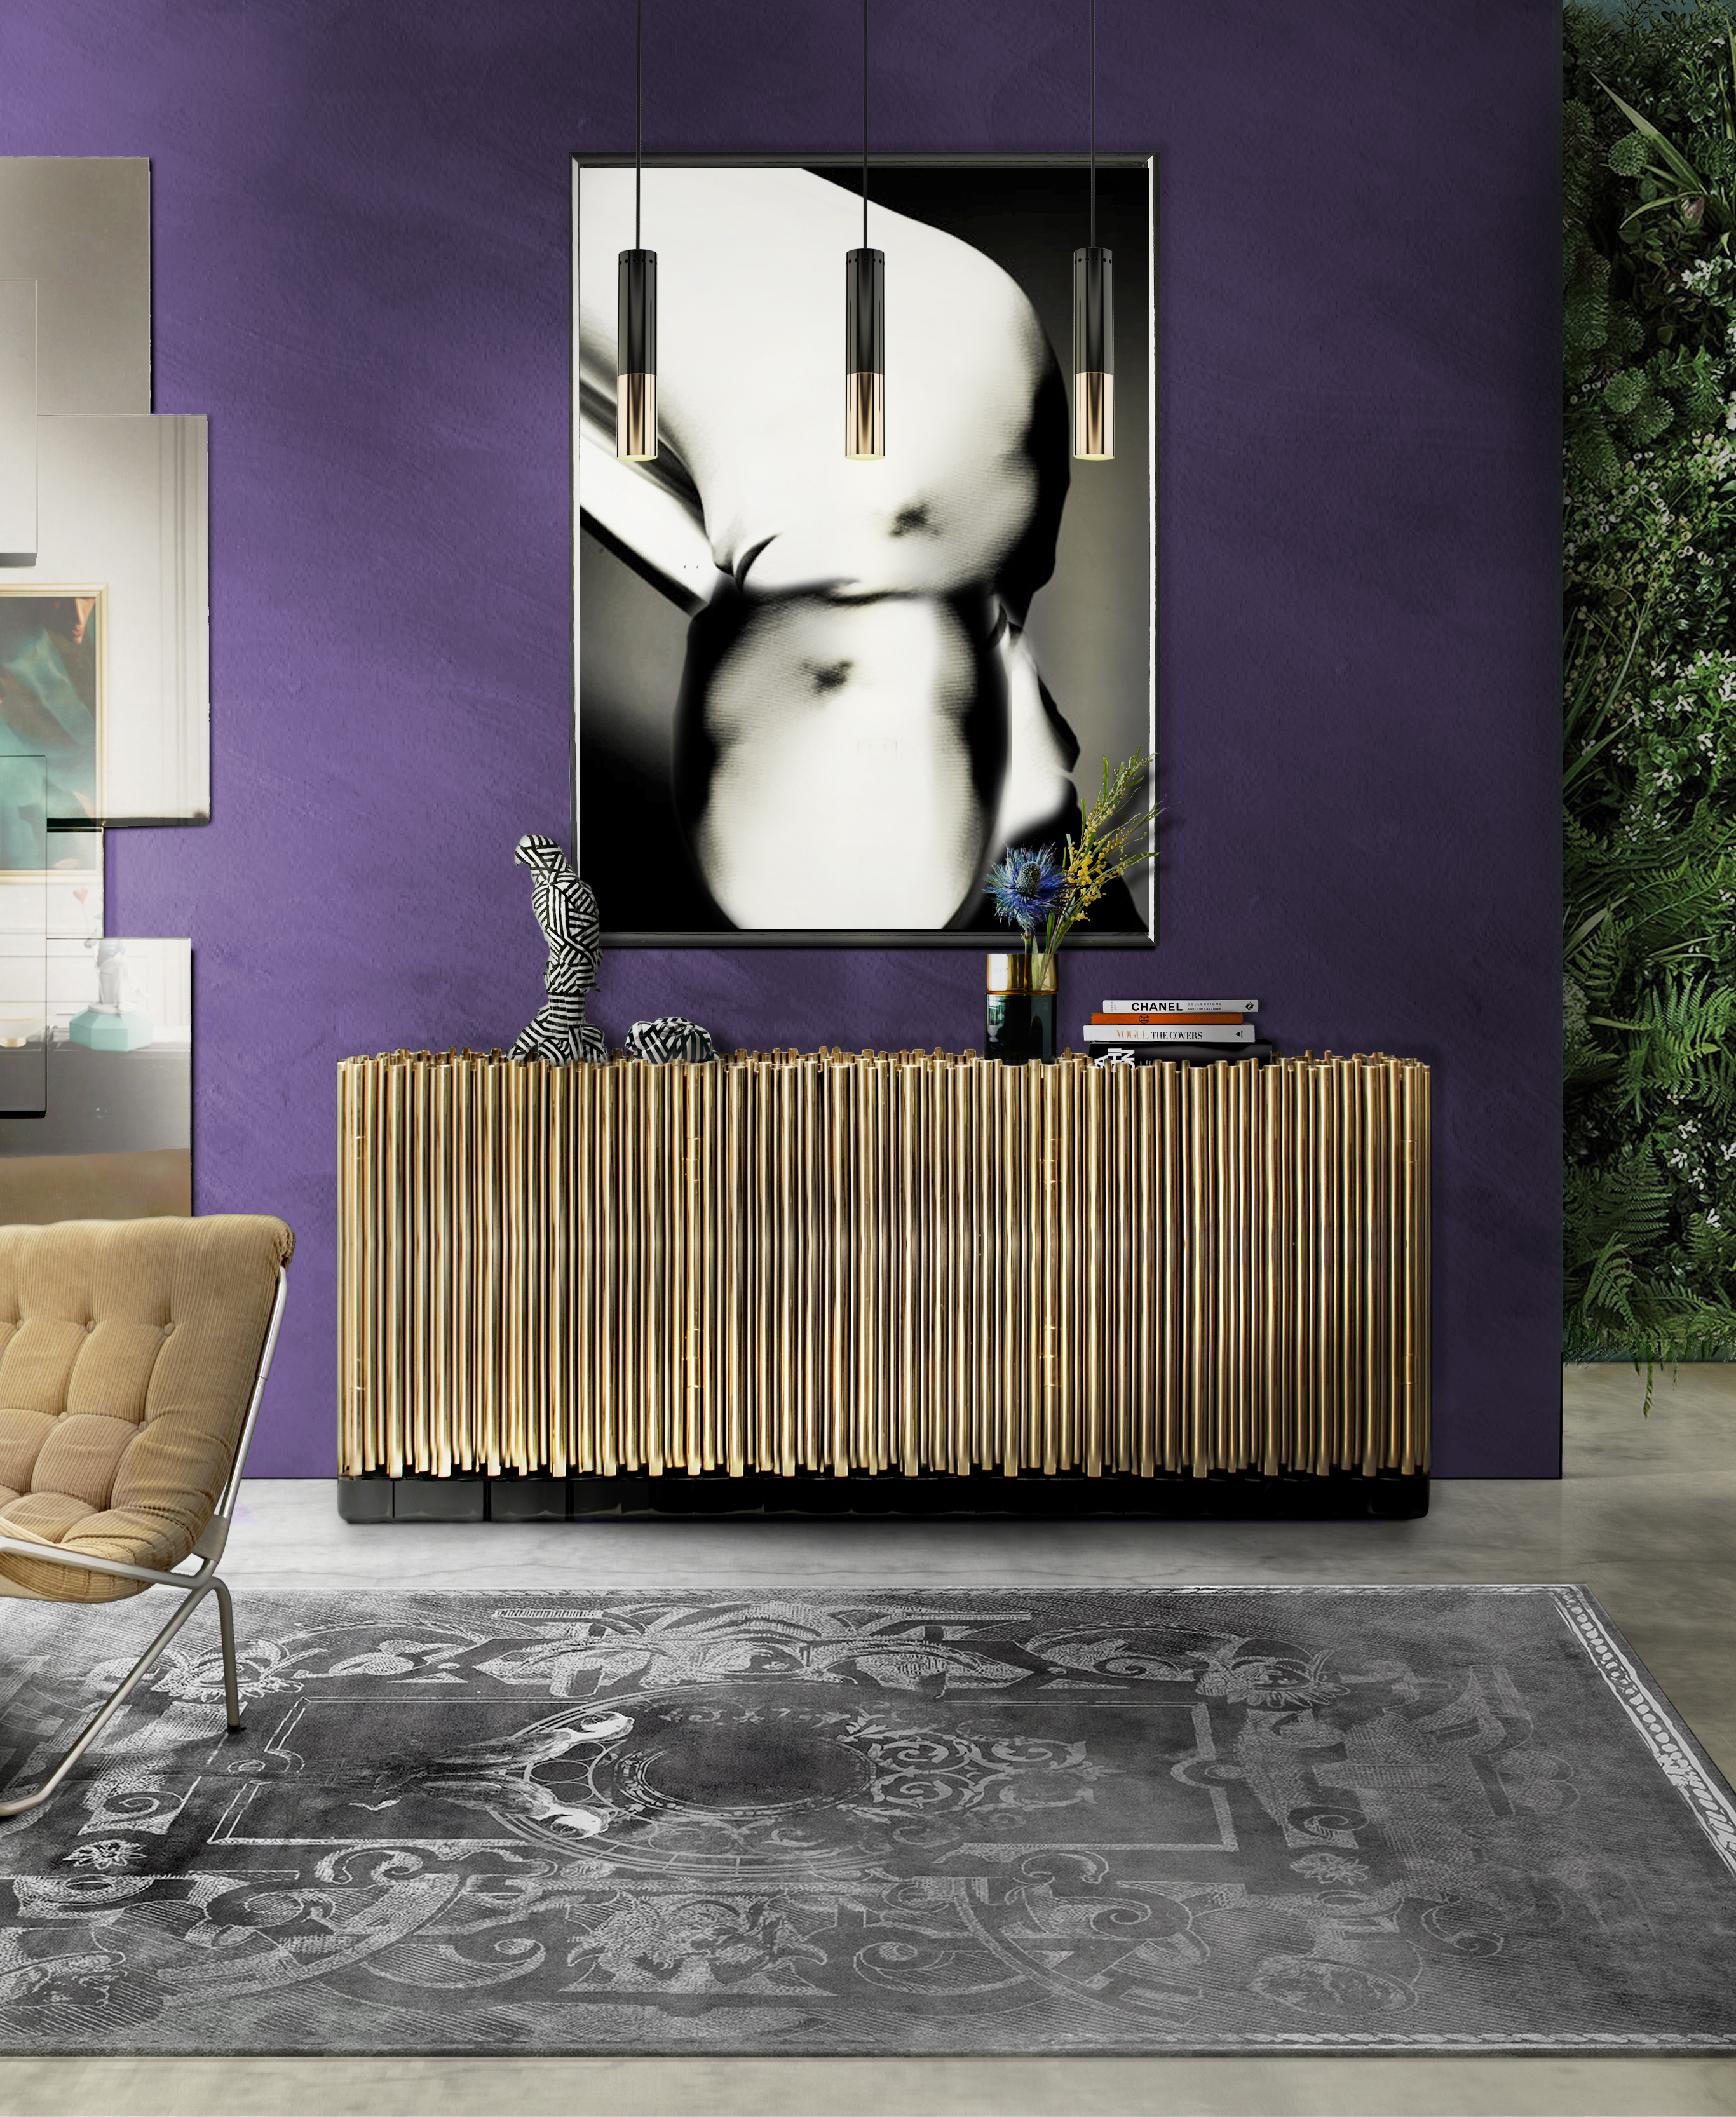 7 Essential Ways to Make UltraViolet the Star of Your Home Decor_1 ultra violet 7 Essential Ways to Make Ultra Violet the Star of Your Home Decor 5 Essential Ways to Make Ultra Violet the Star of Your Home Decor 2